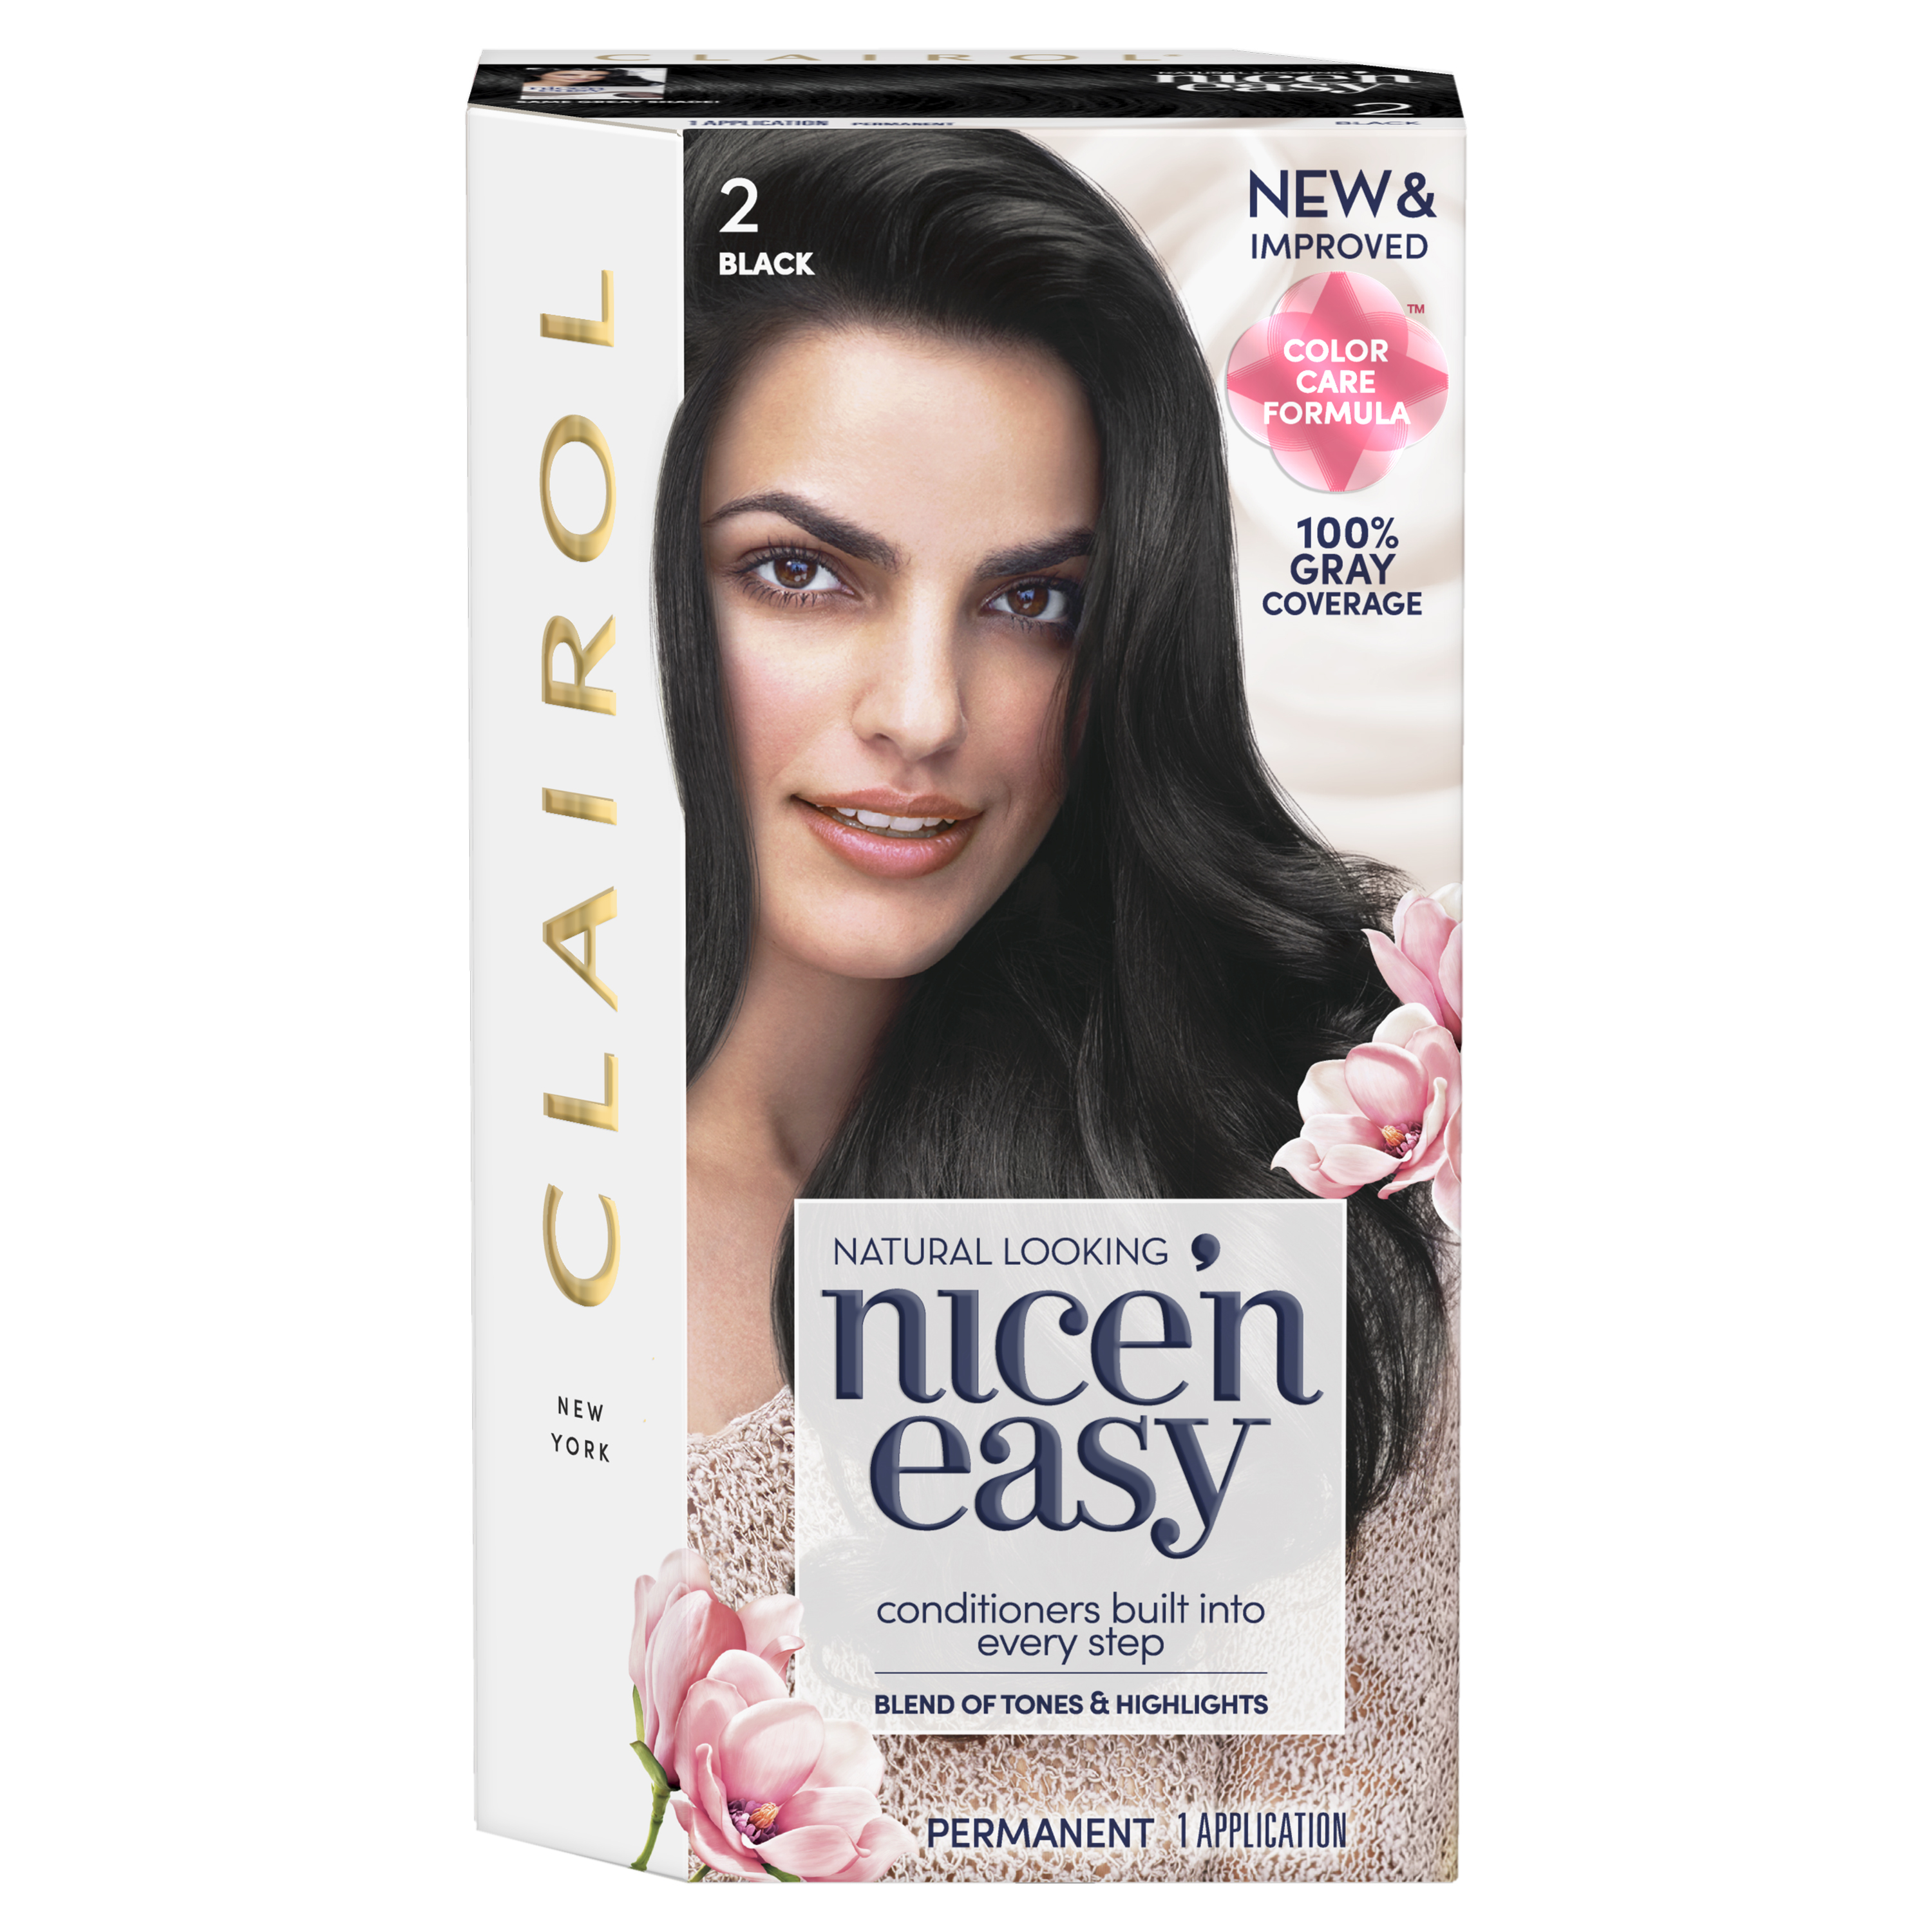 Clairol Launches New Nicen Easy Color Care Hair Color With No